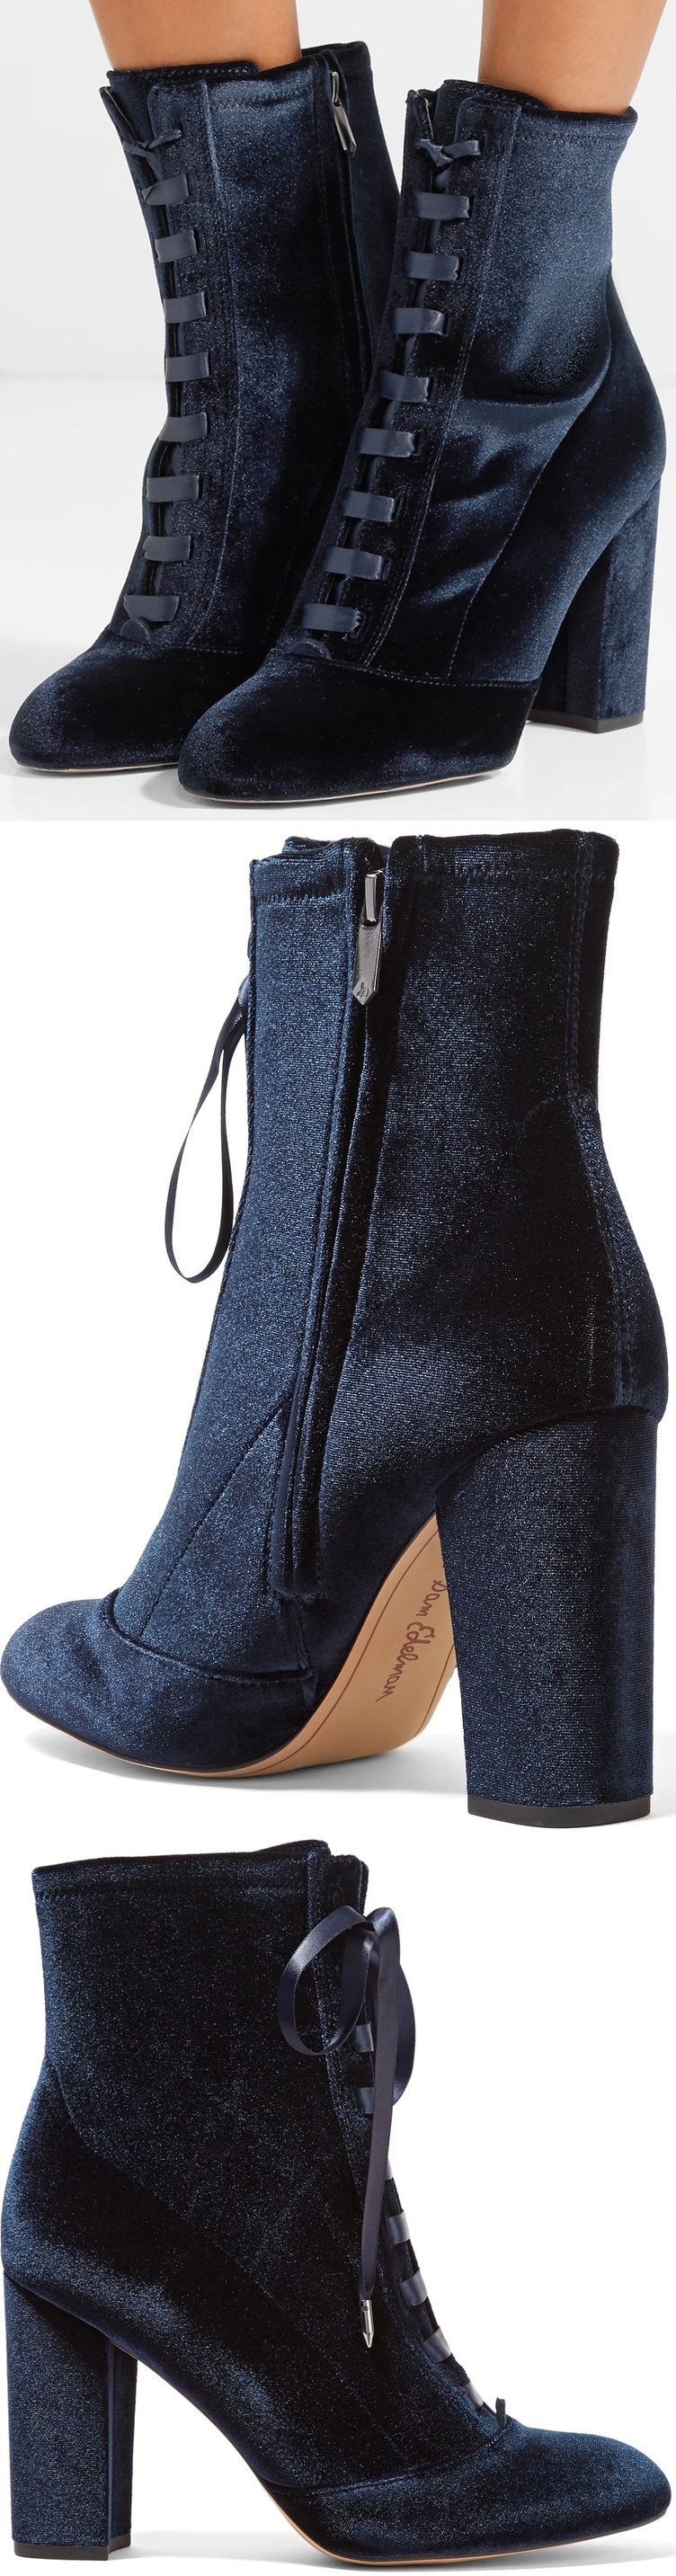 fb0625ec9 Nod to the velvet trend with Sam Edelman s  Clementine  boots. Made from  this plush fabric